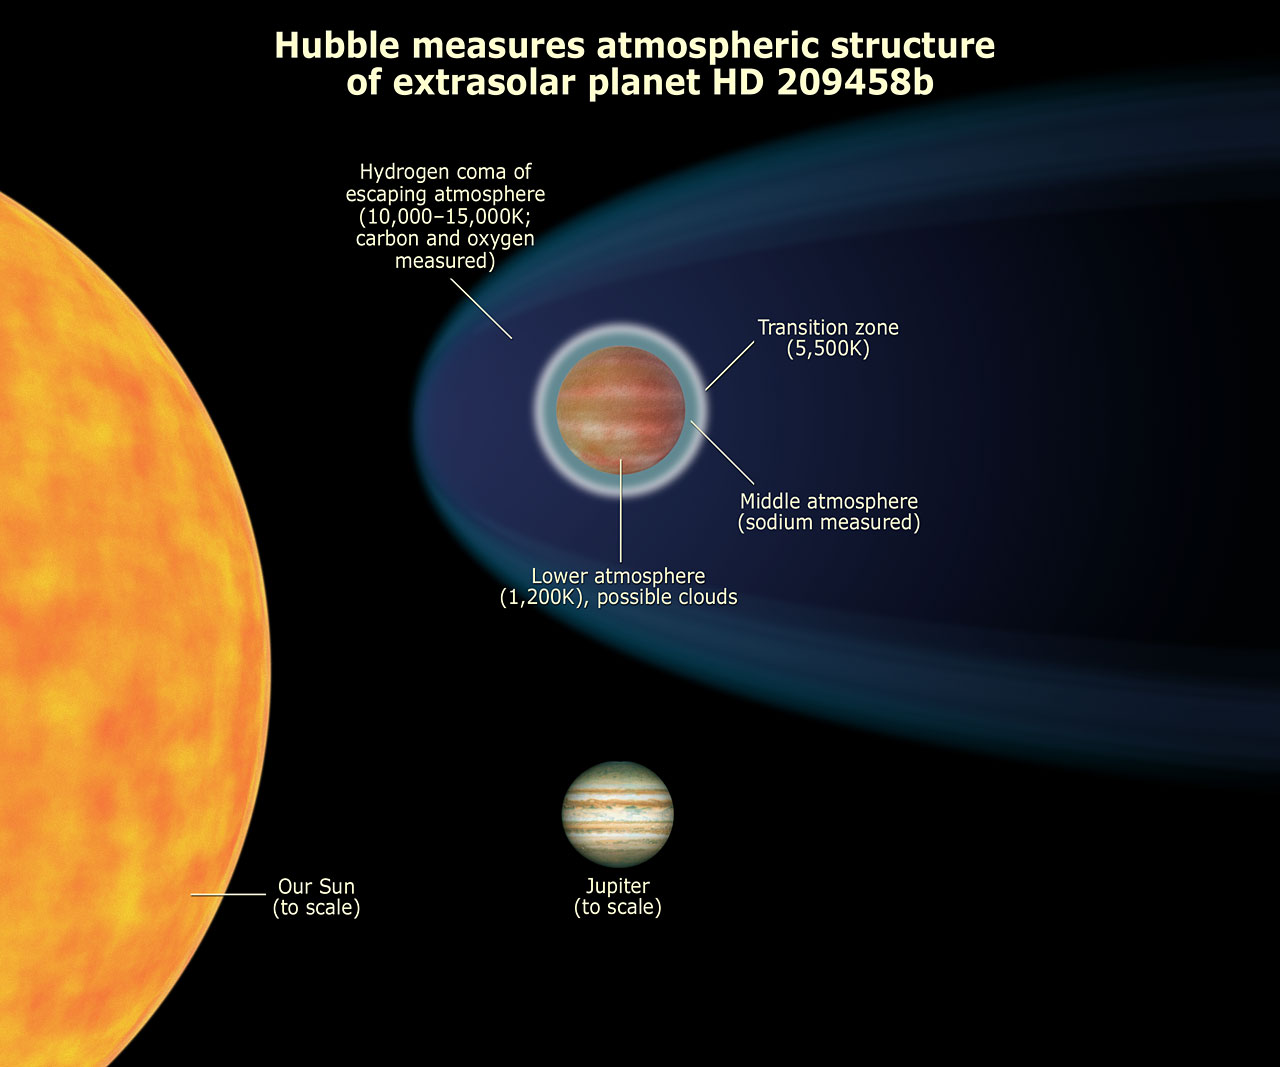 Hubble Measures Atmospheric Structure of Extrasolar Planet HD 209458b